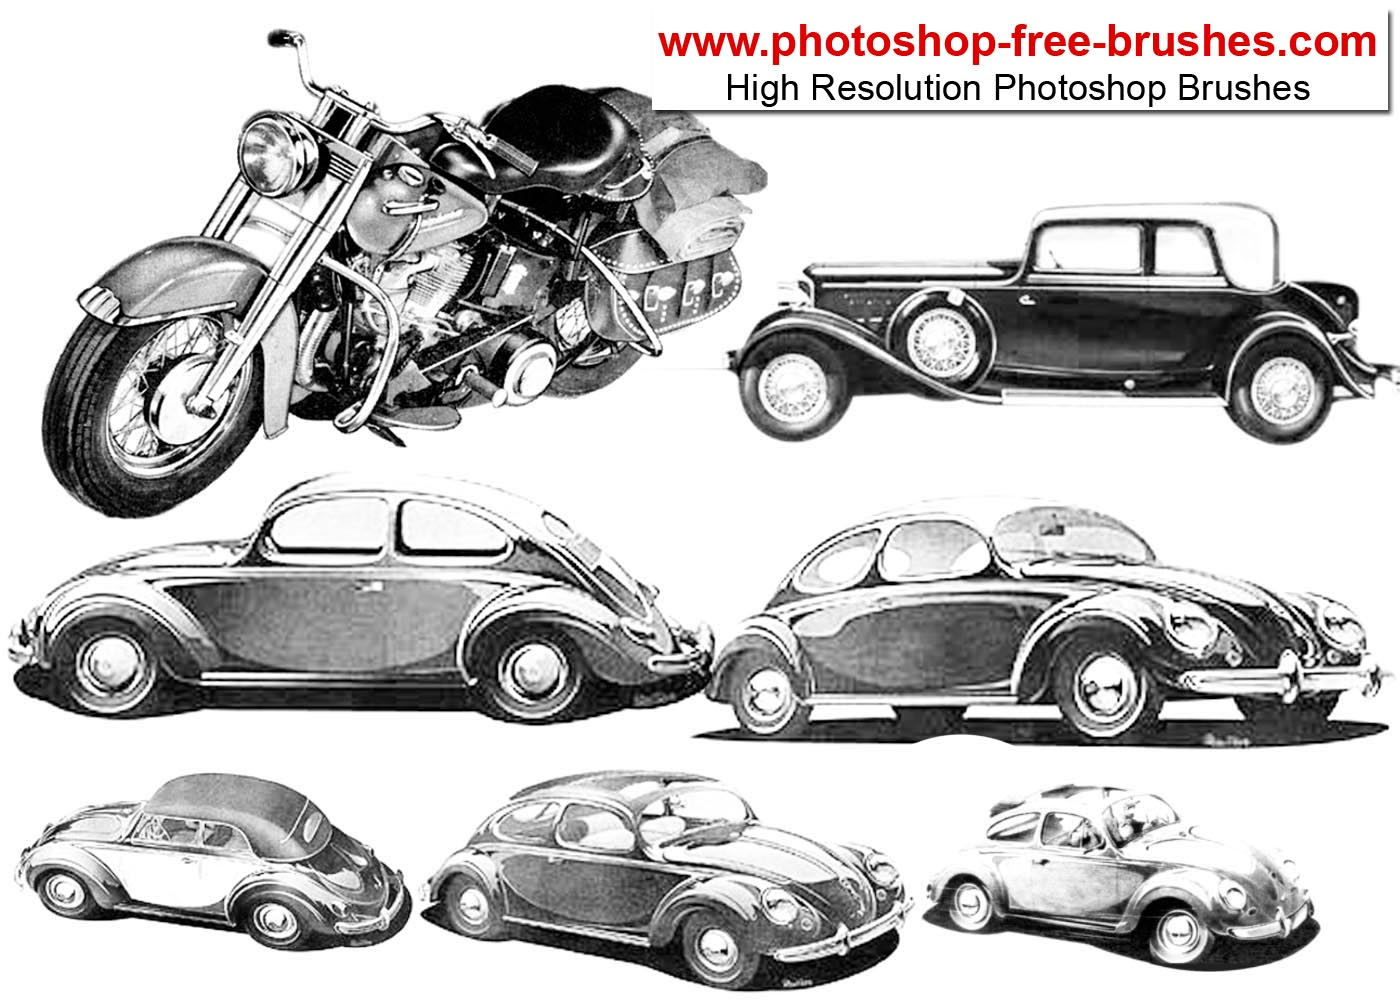 Old Cars and Bike Photoshop Brushes